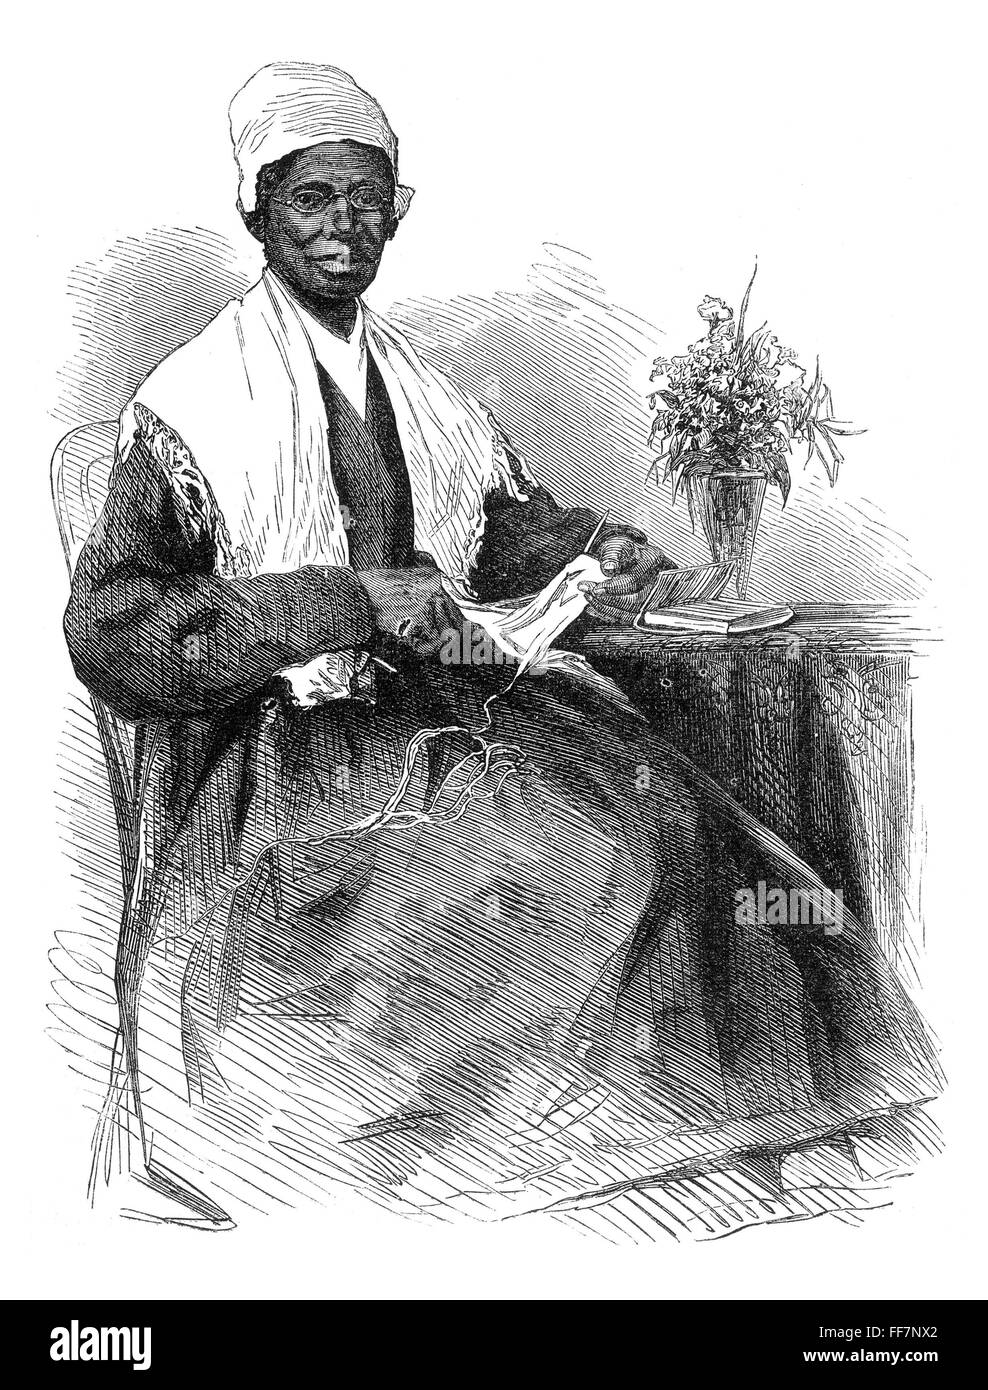 the story of slave named isabella baumfree in sojourner truth Sojourner was born a slave and did not know how to read or write because slaves weren sojourner changed her name in 1843 from isabella baumfree to sojourner truth.